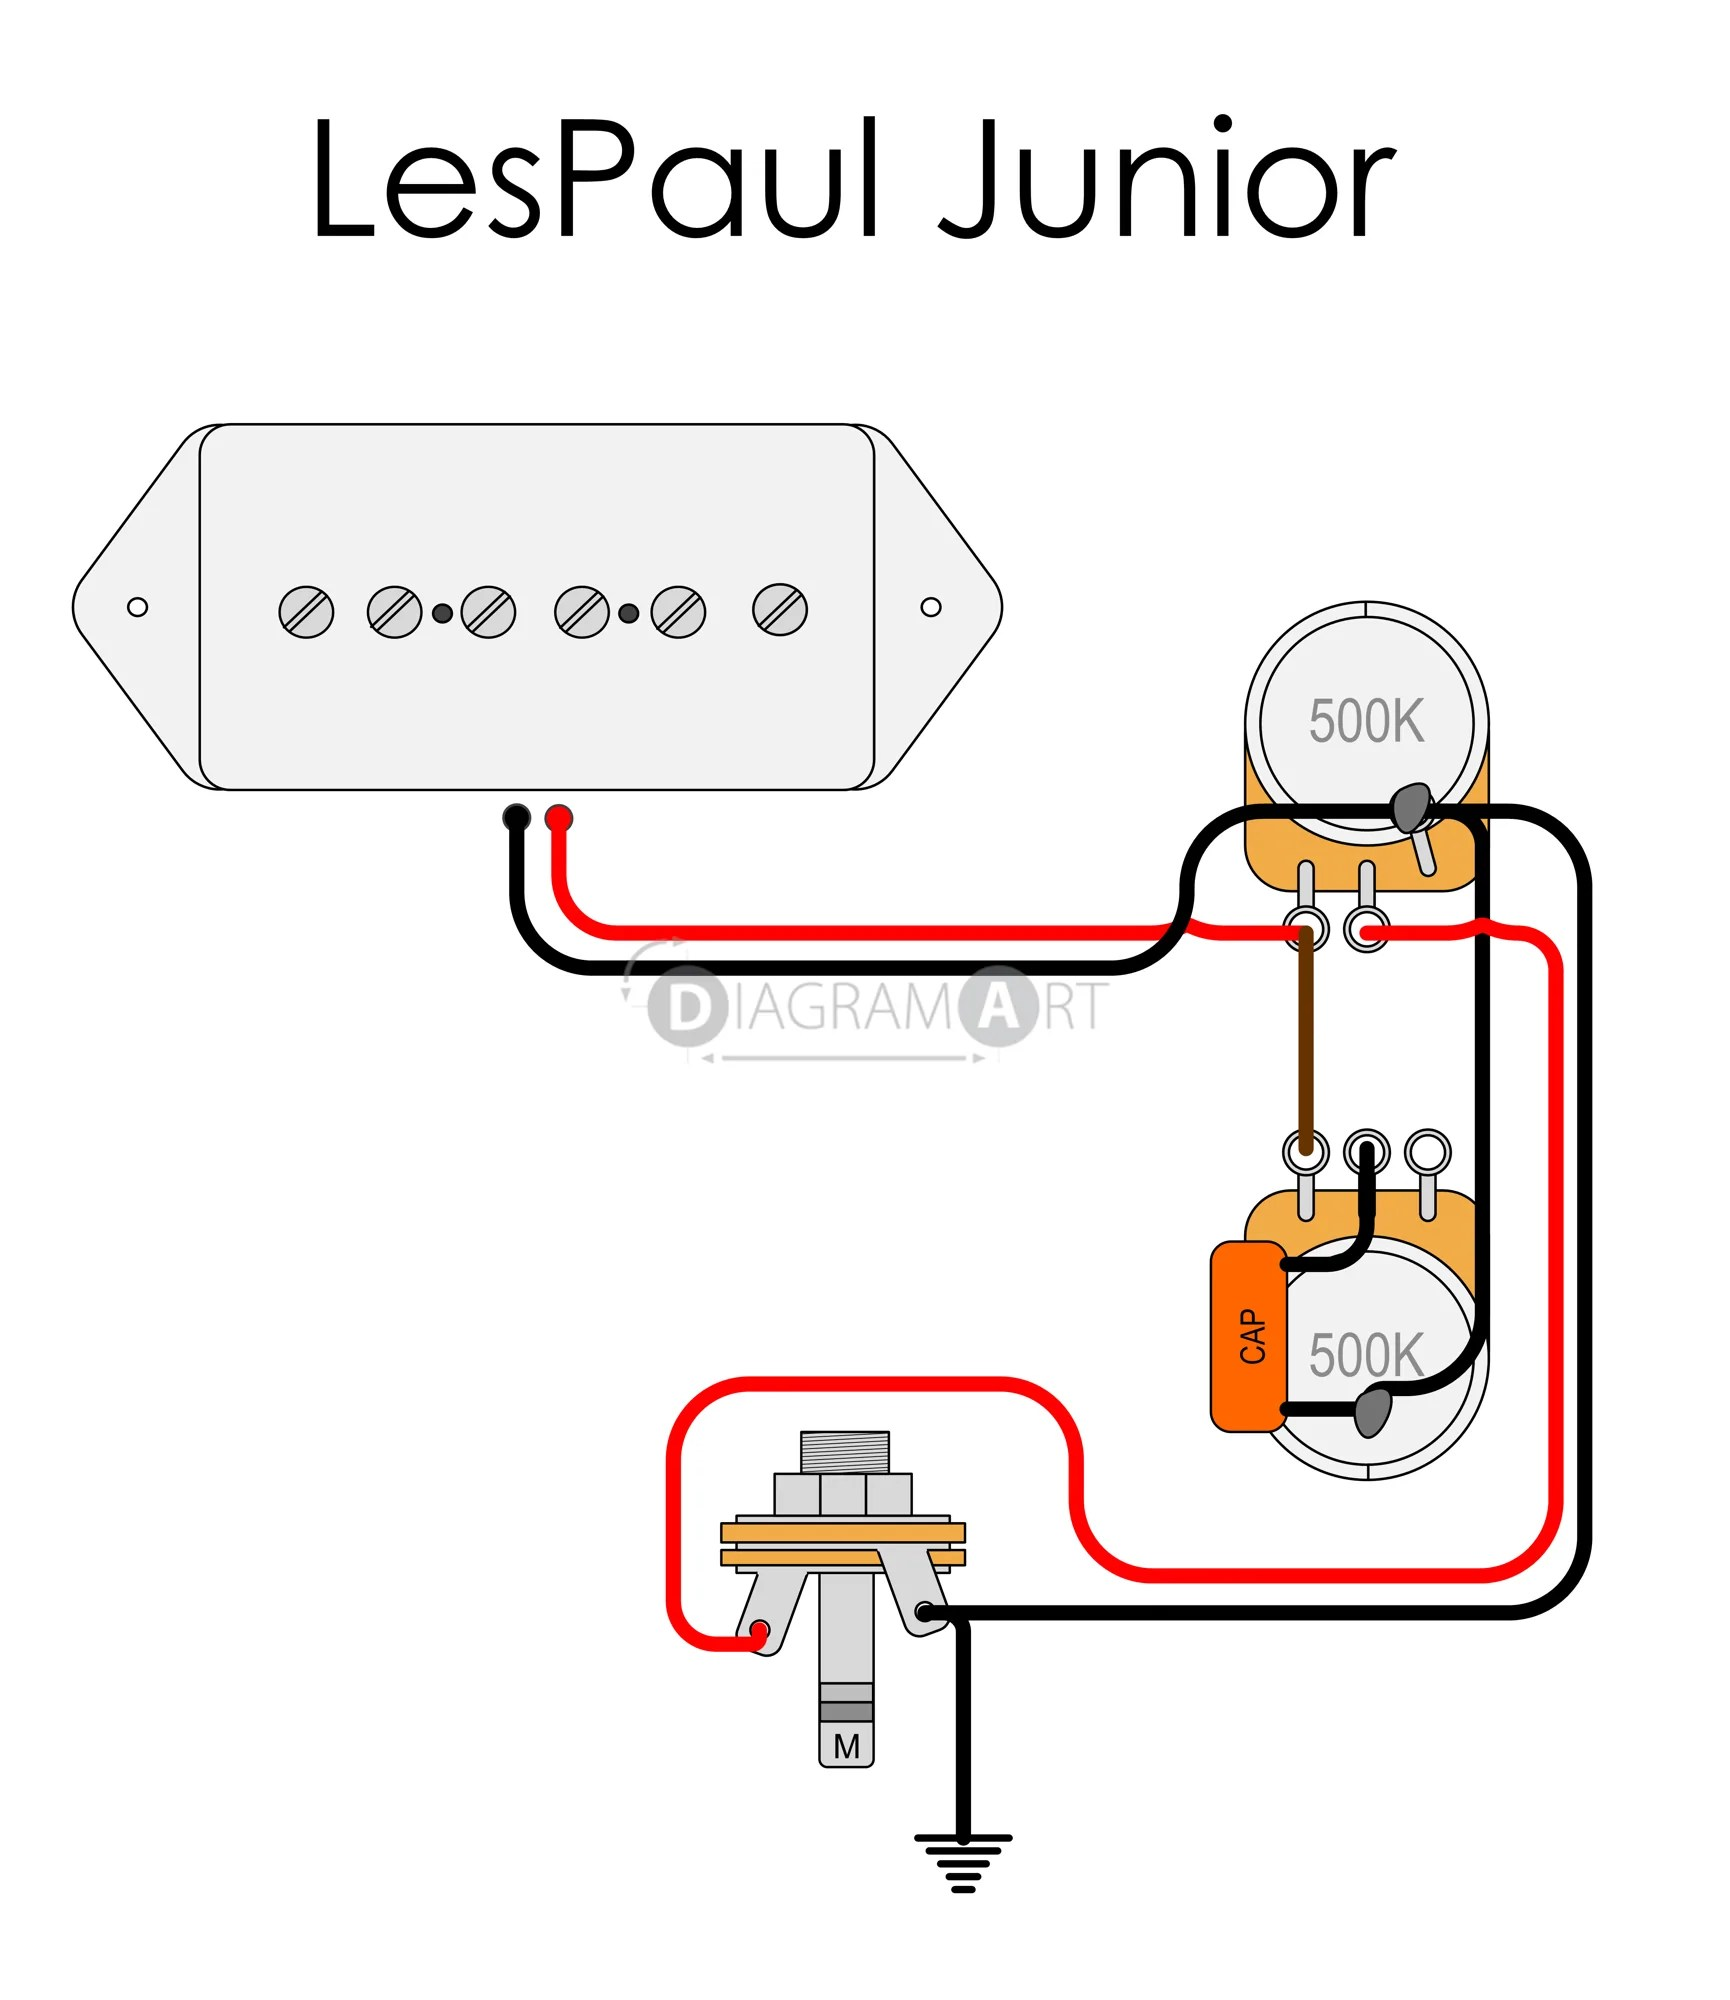 medium resolution of guitar wiring circuit diagram wiring diagram database the guitar wiring blog diagrams and tips gibson les source gibson les paul toggle switch